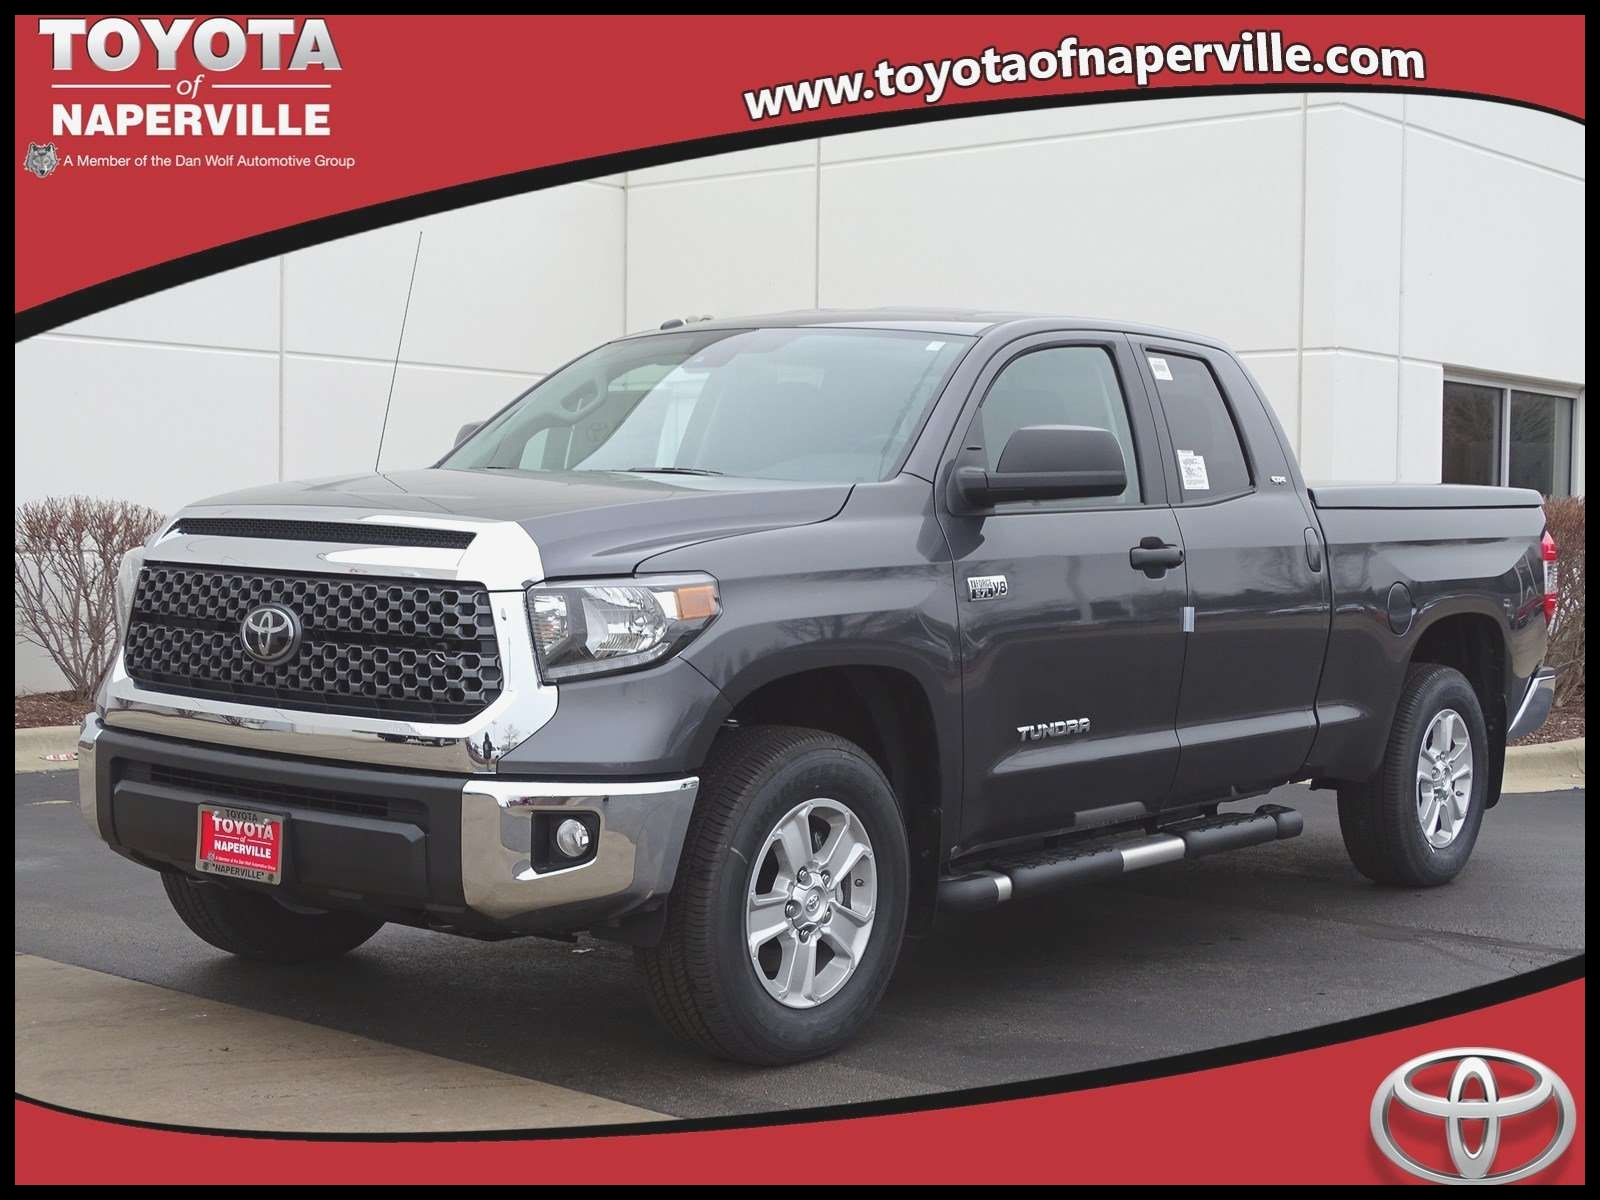 Toyota Tundra Bull Bar Beautiful New 2018 toyota Tundra Sr5 4d Double Cab In Naperville T